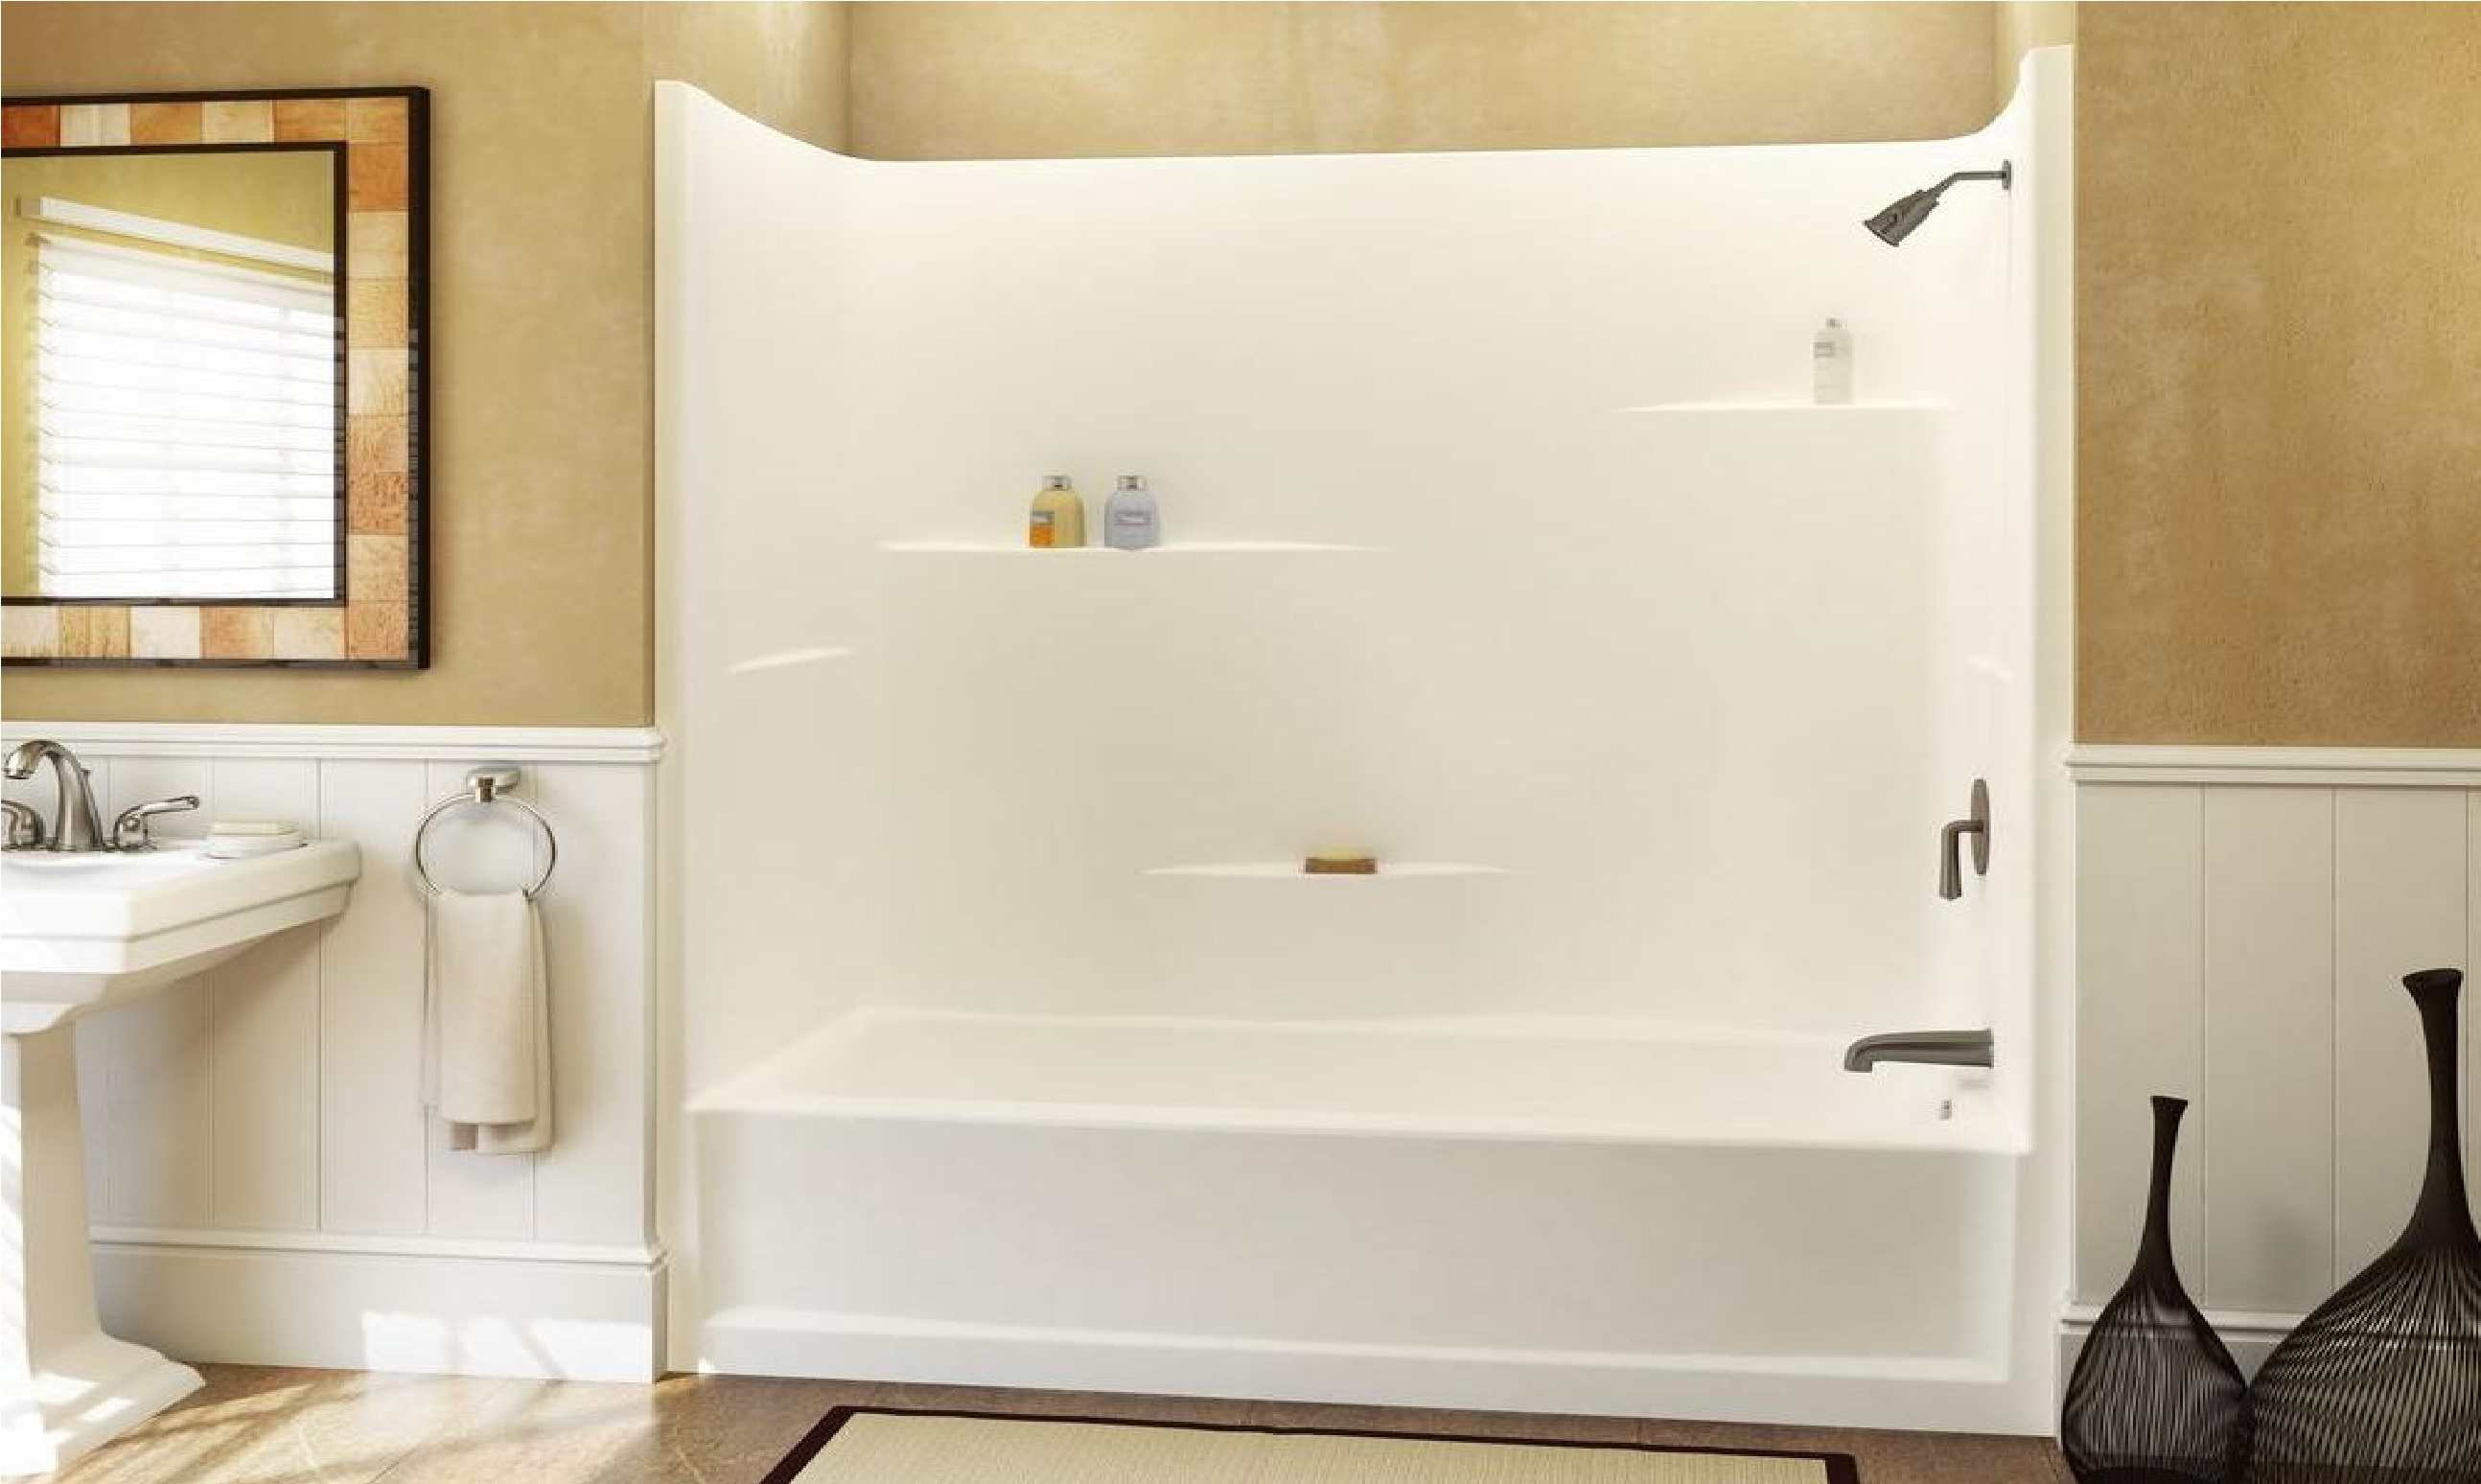 combo with bathtub surround bath shower applied decor tub floor and to pan seat bathroom fiberglass your for home admirable lowes